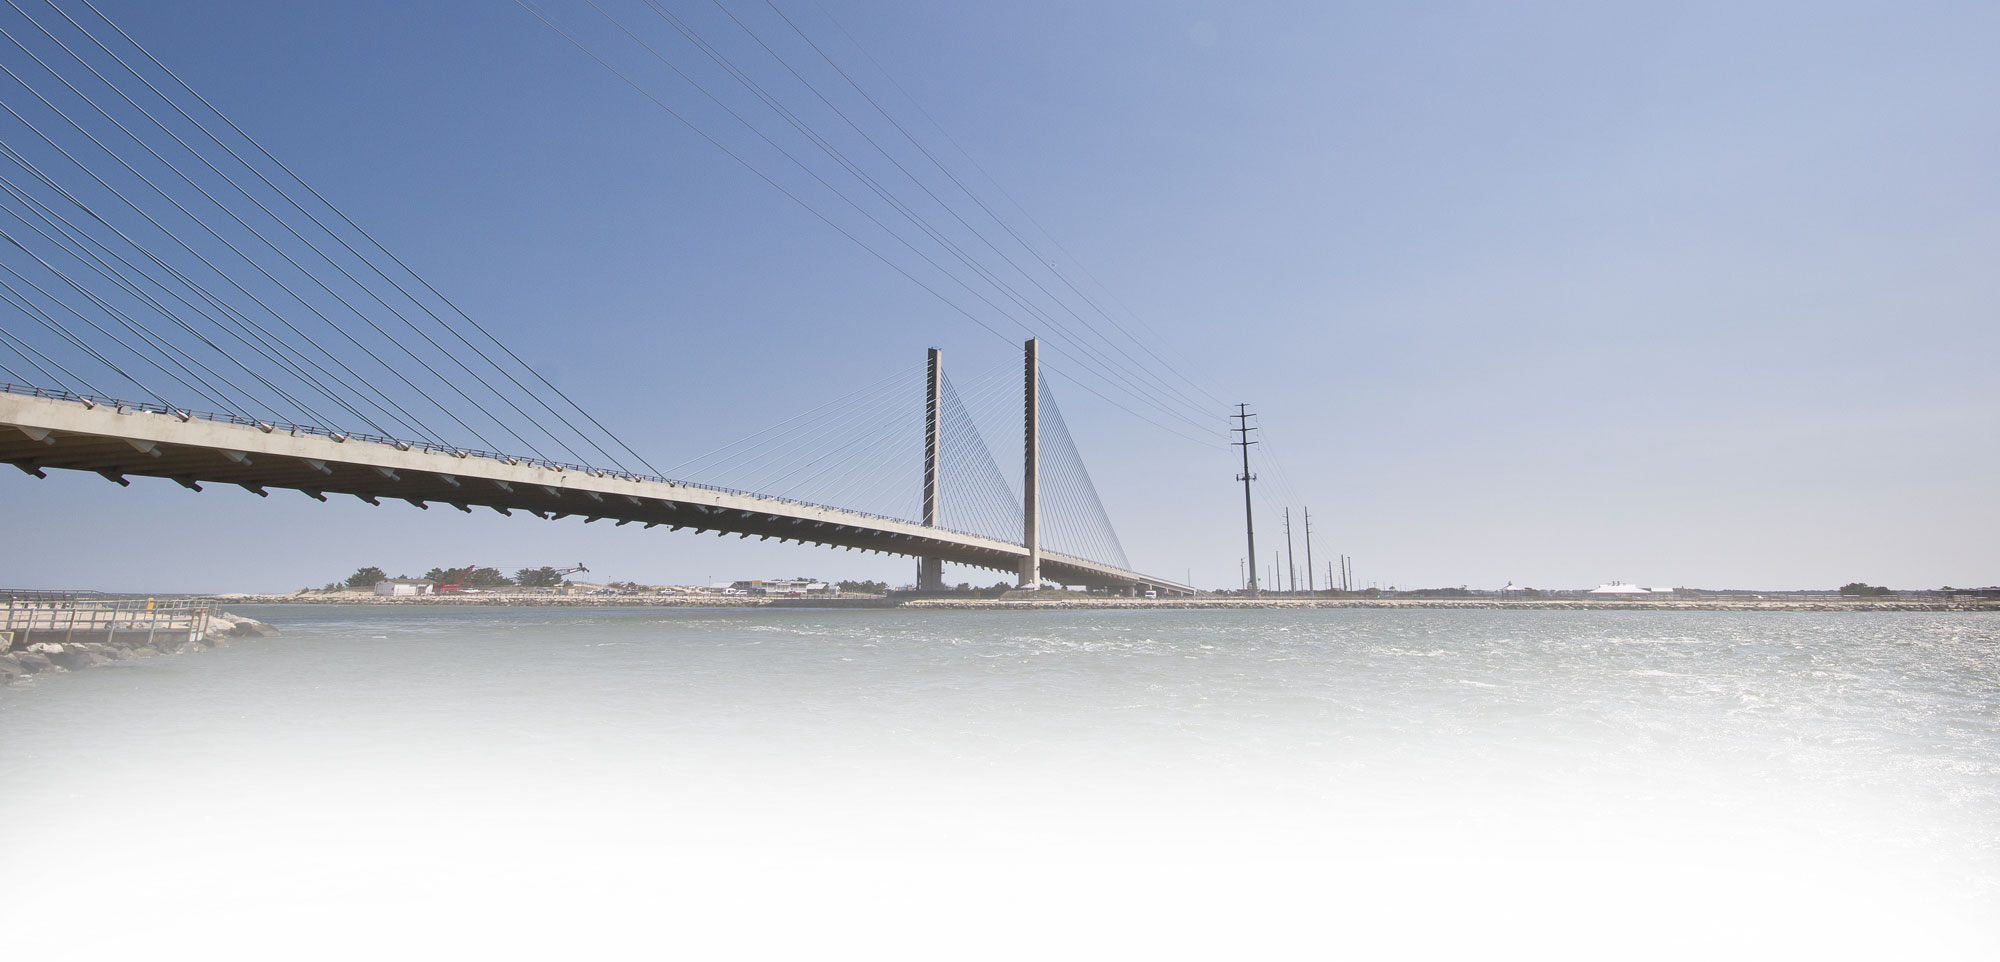 image of bridge over water